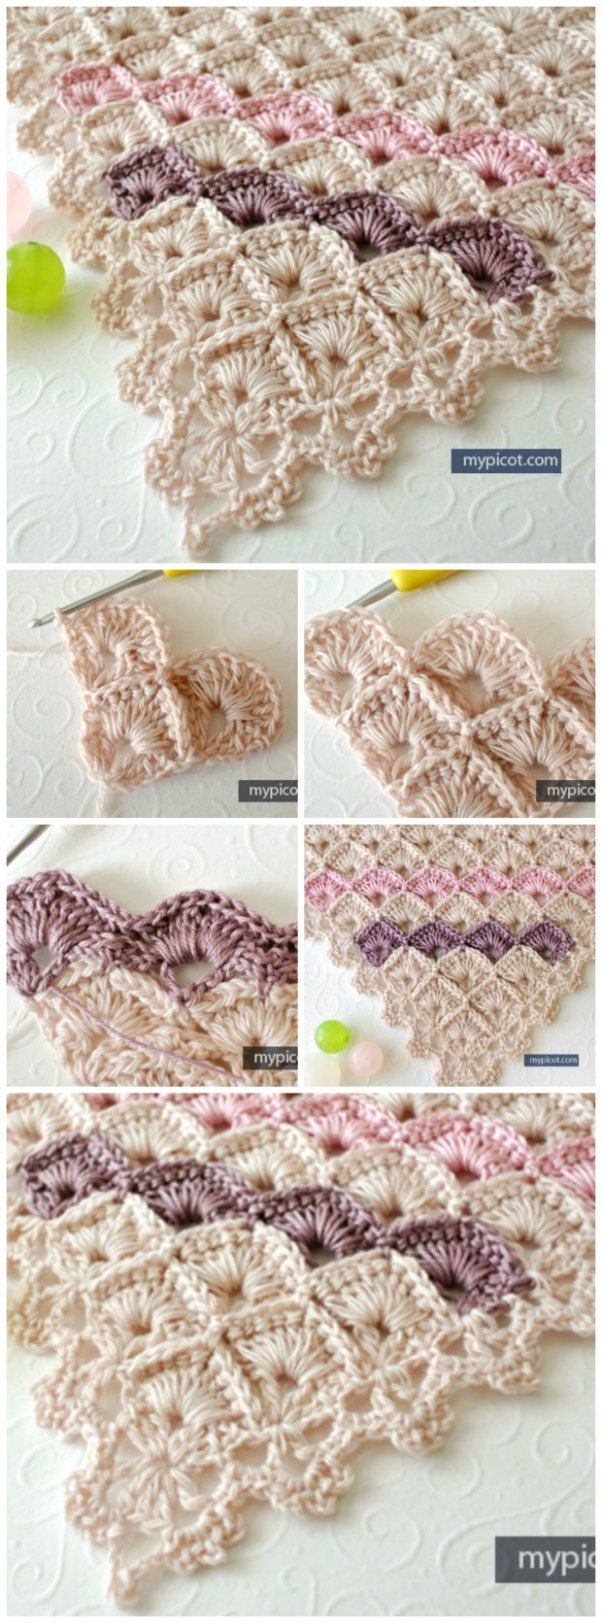 366 best crochet images on Pinterest | Crocheting patterns, Crochet ...